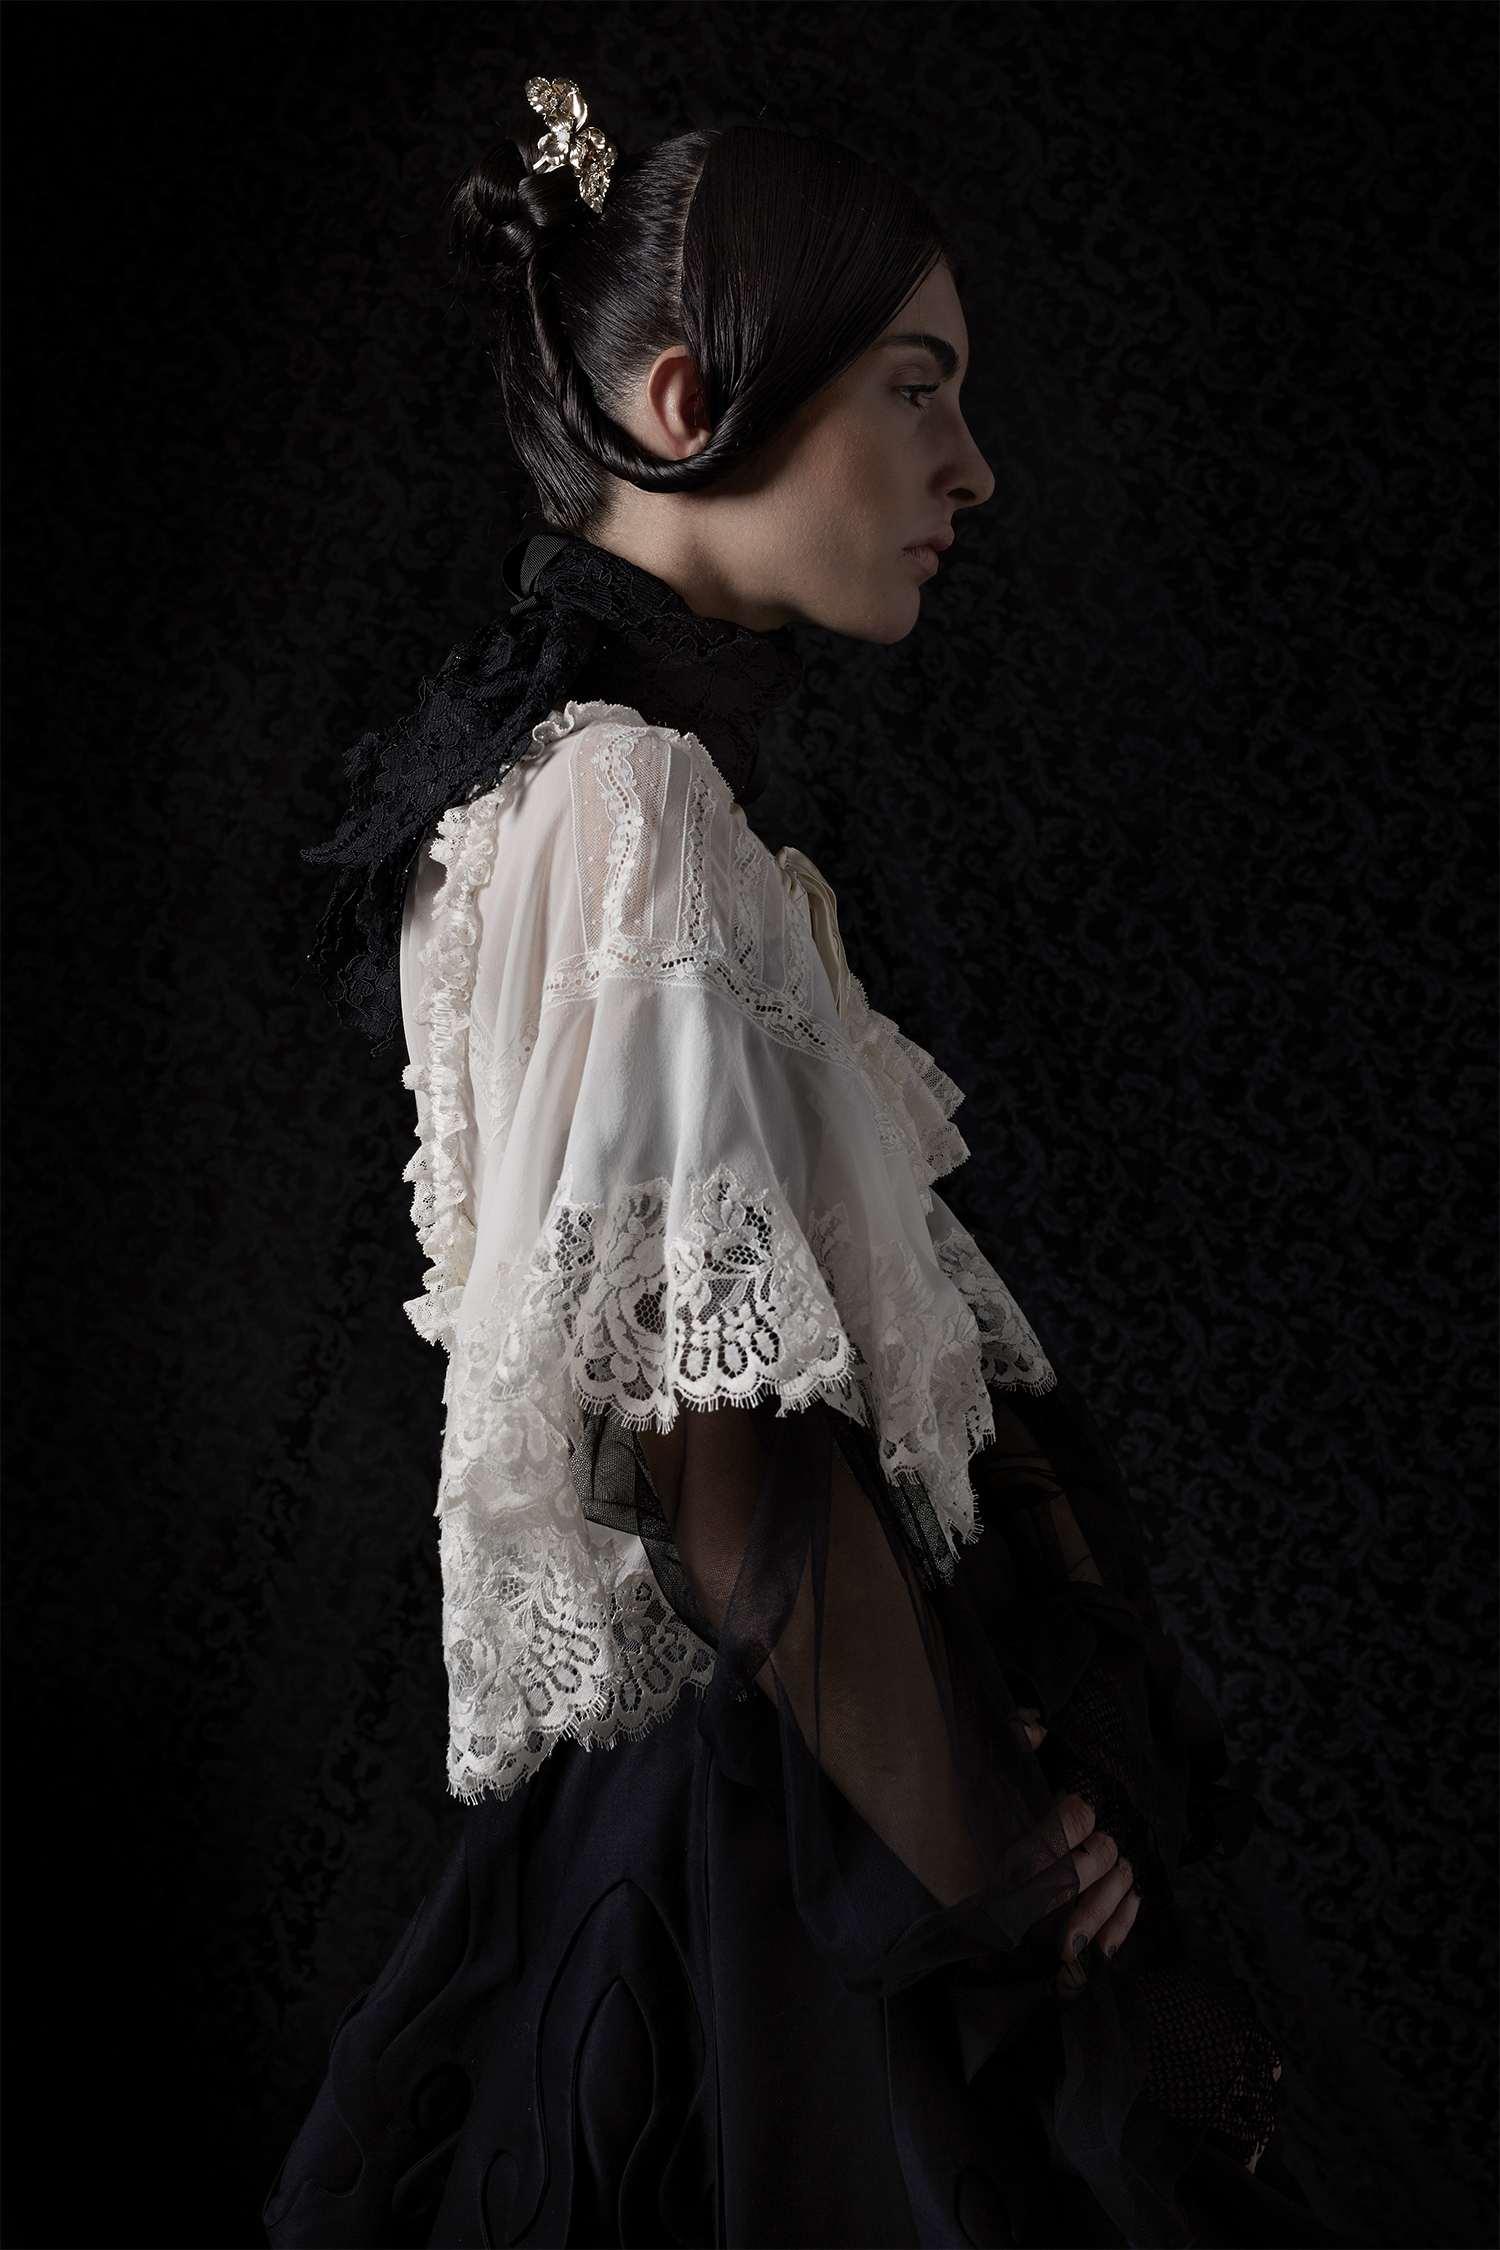 White blouse with lace detail, Annagiulia Firenze; black skirt, Sergiu-Marian Bechian; hair accessory, Vittorio Ceccoli Jewelry; black lace (used as a neckpiece), Giada Curti